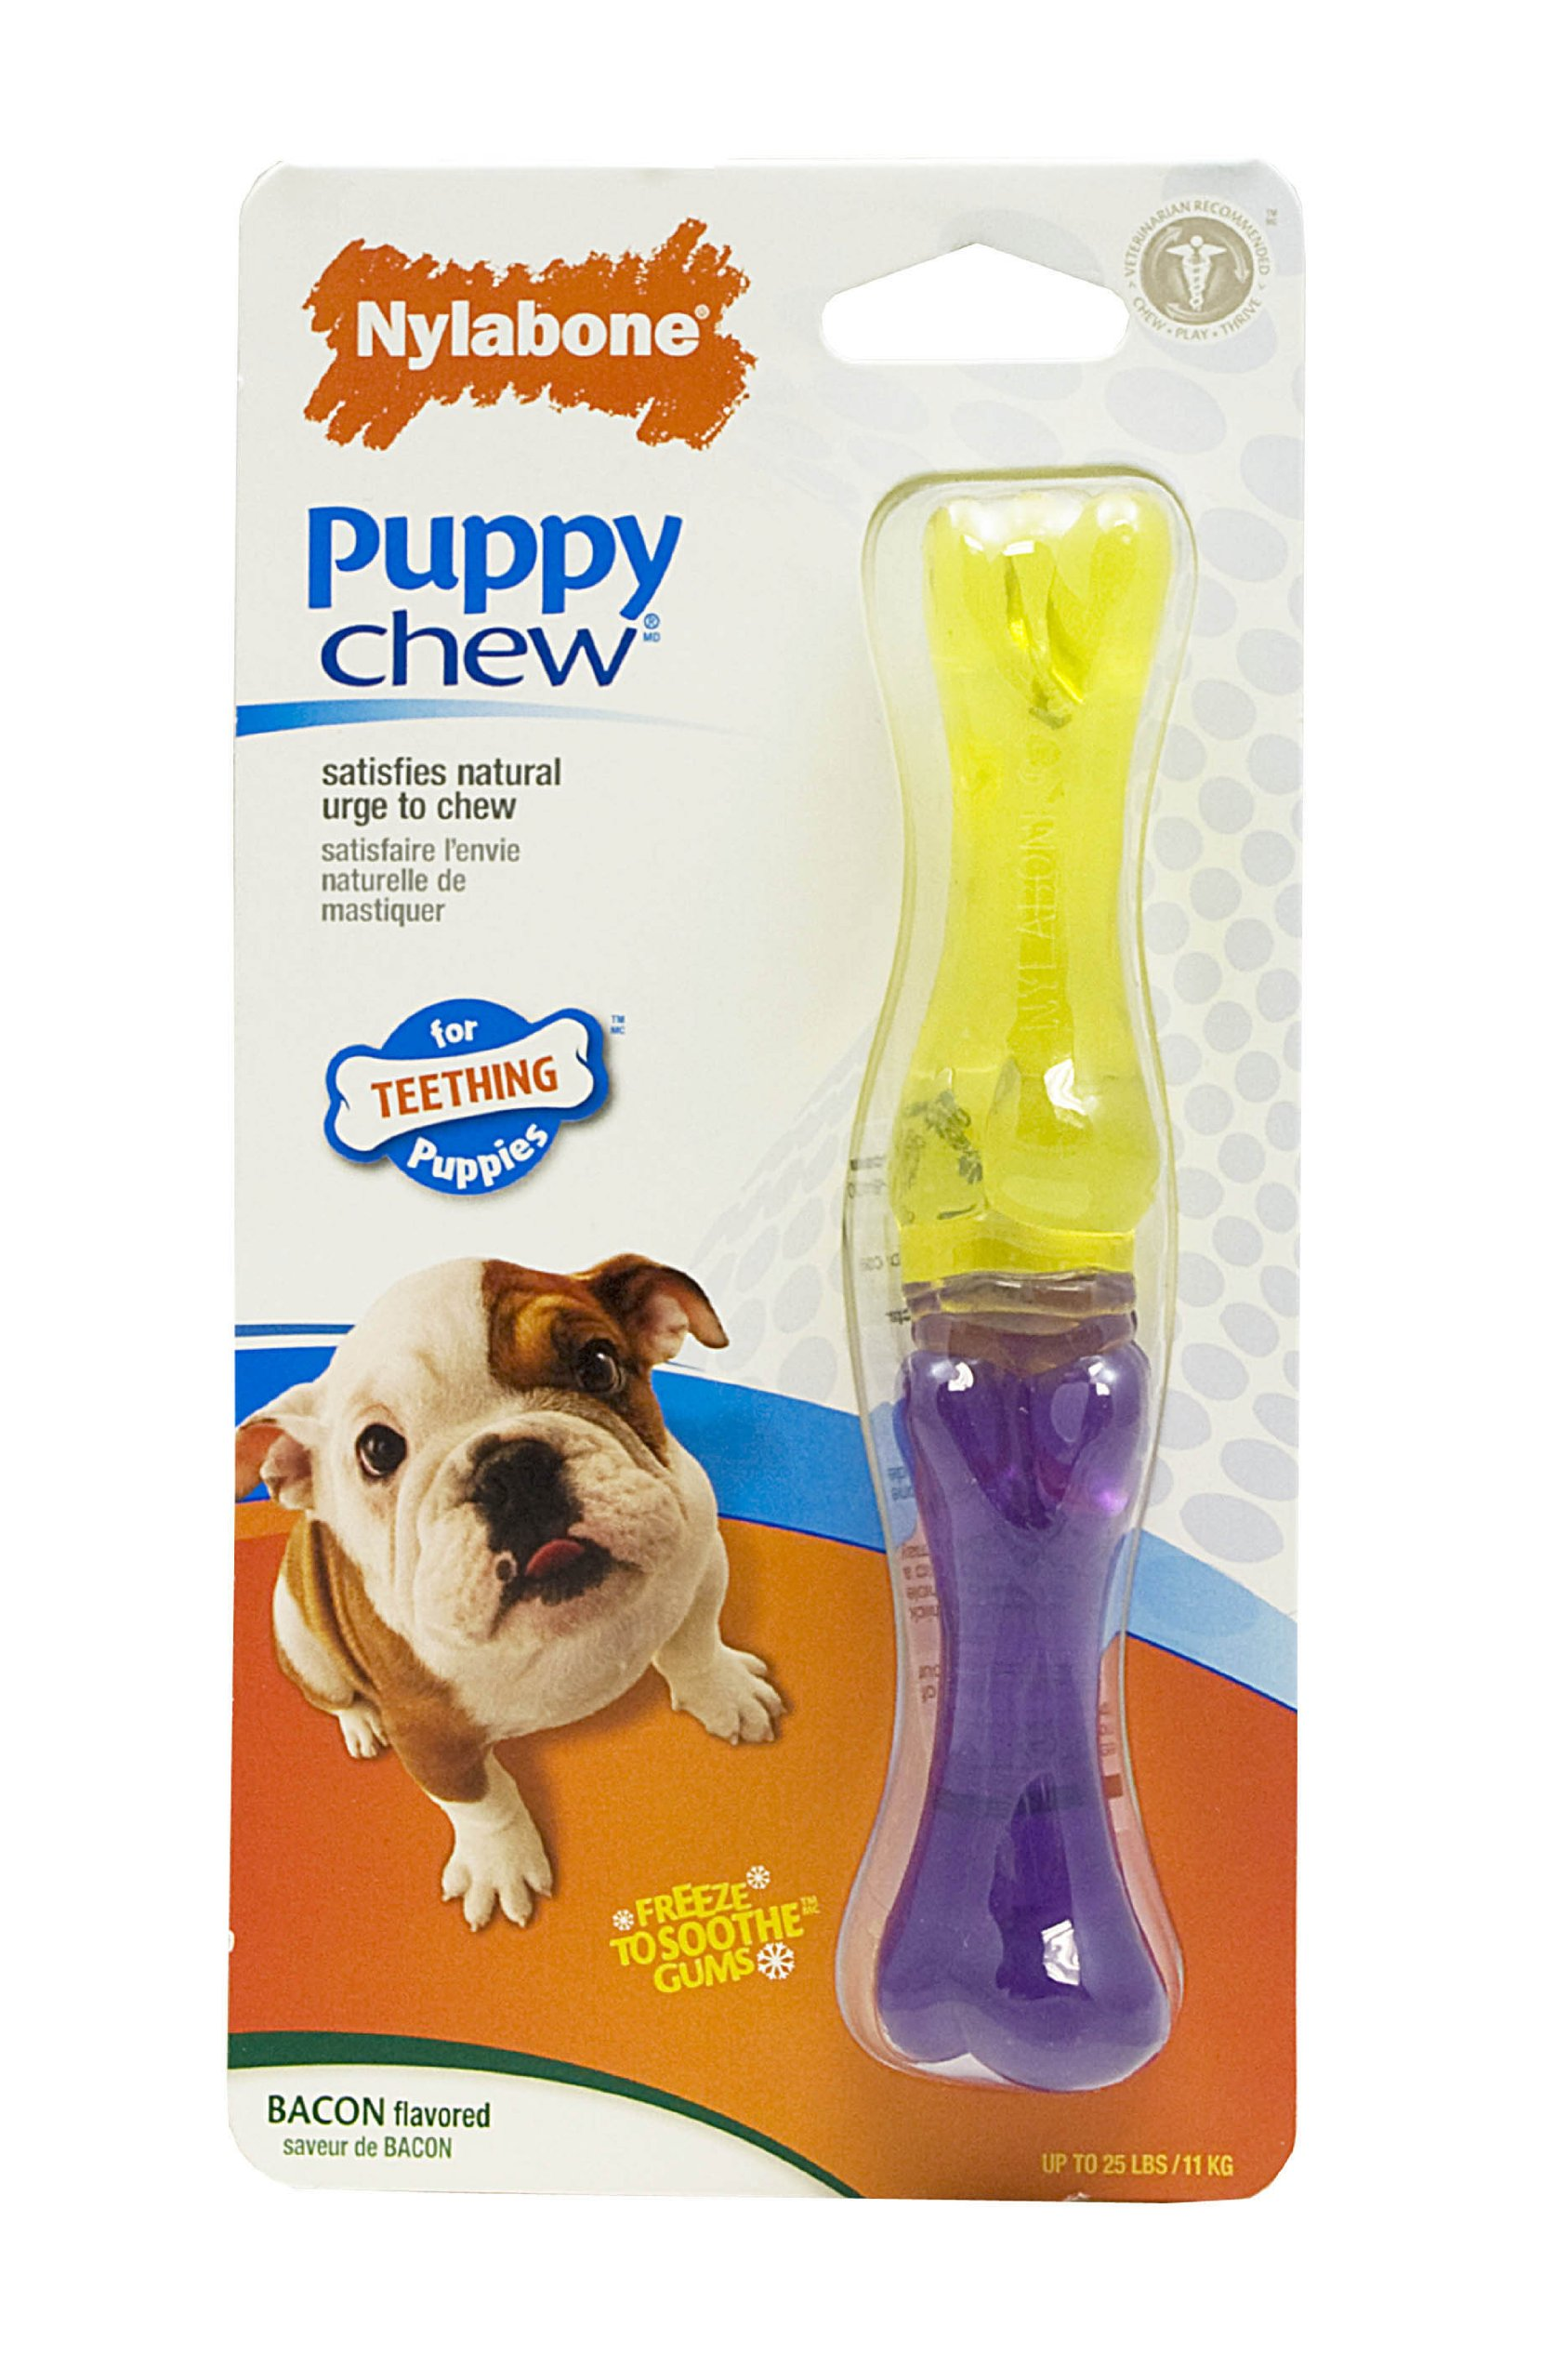 Nylabone Just For Puppies Bacon Flavored Stick Bone Puppy Dog Teething Chew Toy